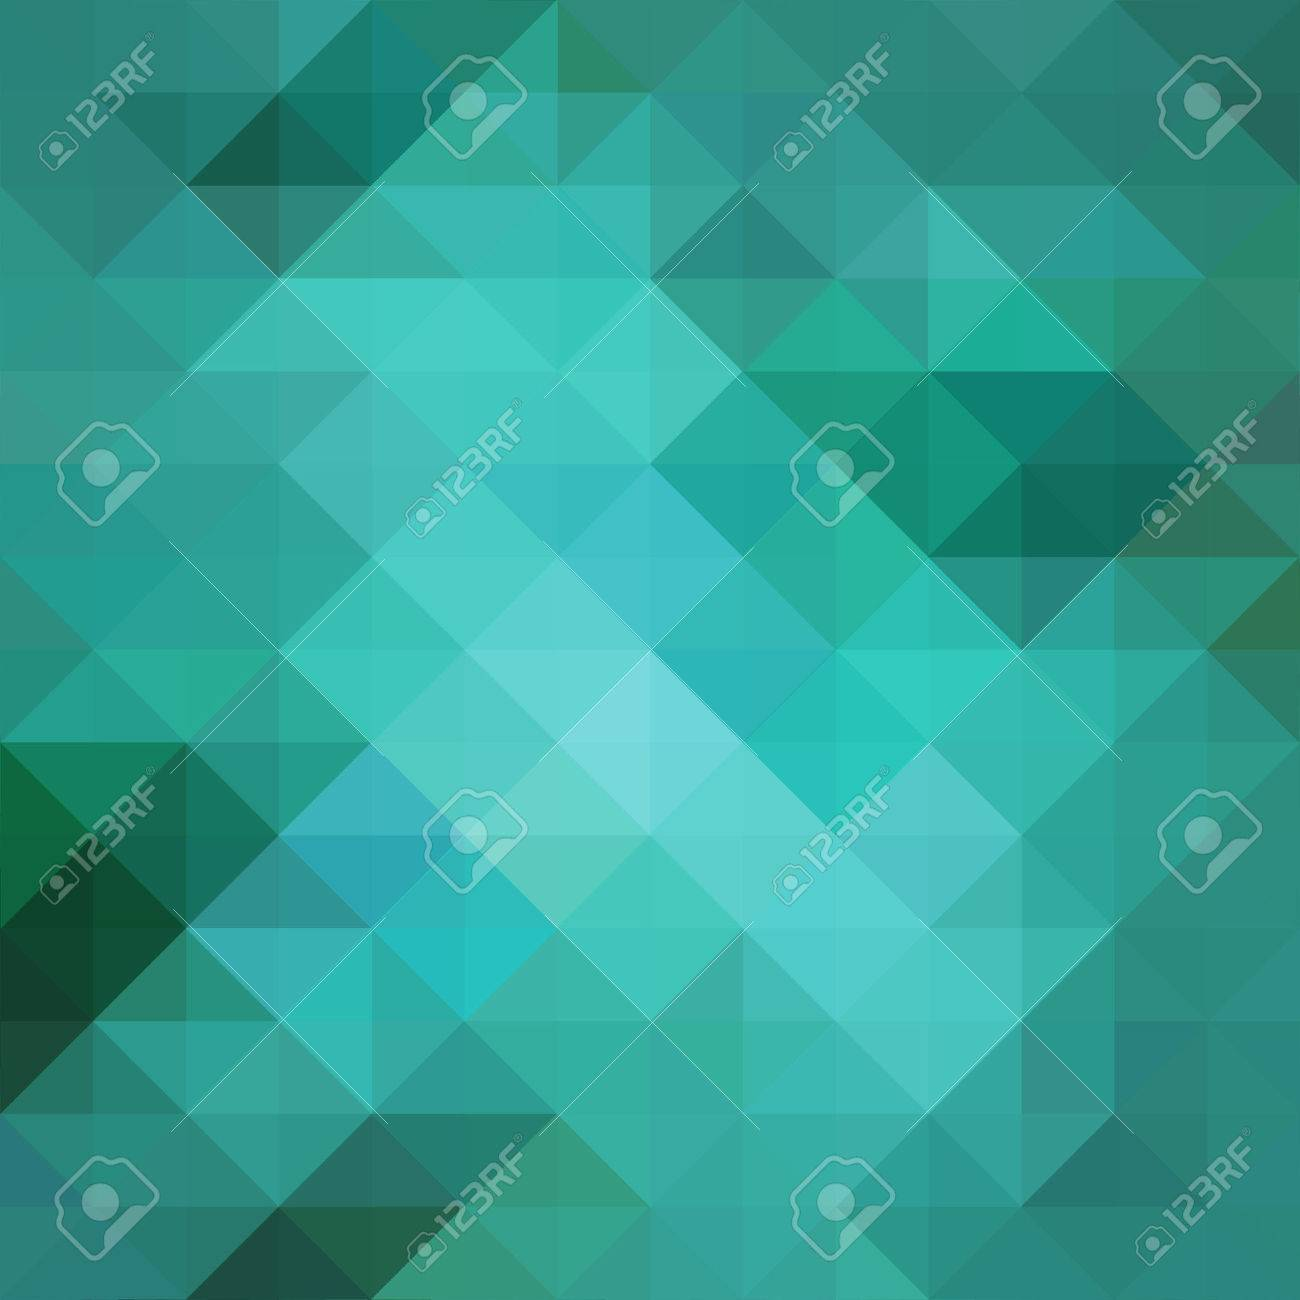 abstract blue low poly background with facets, teal blue triangle and square shapes in geometric modern pattern design, trendy cool 3d pattern design with gloss or shiny stained glass mosaic style - 47465341